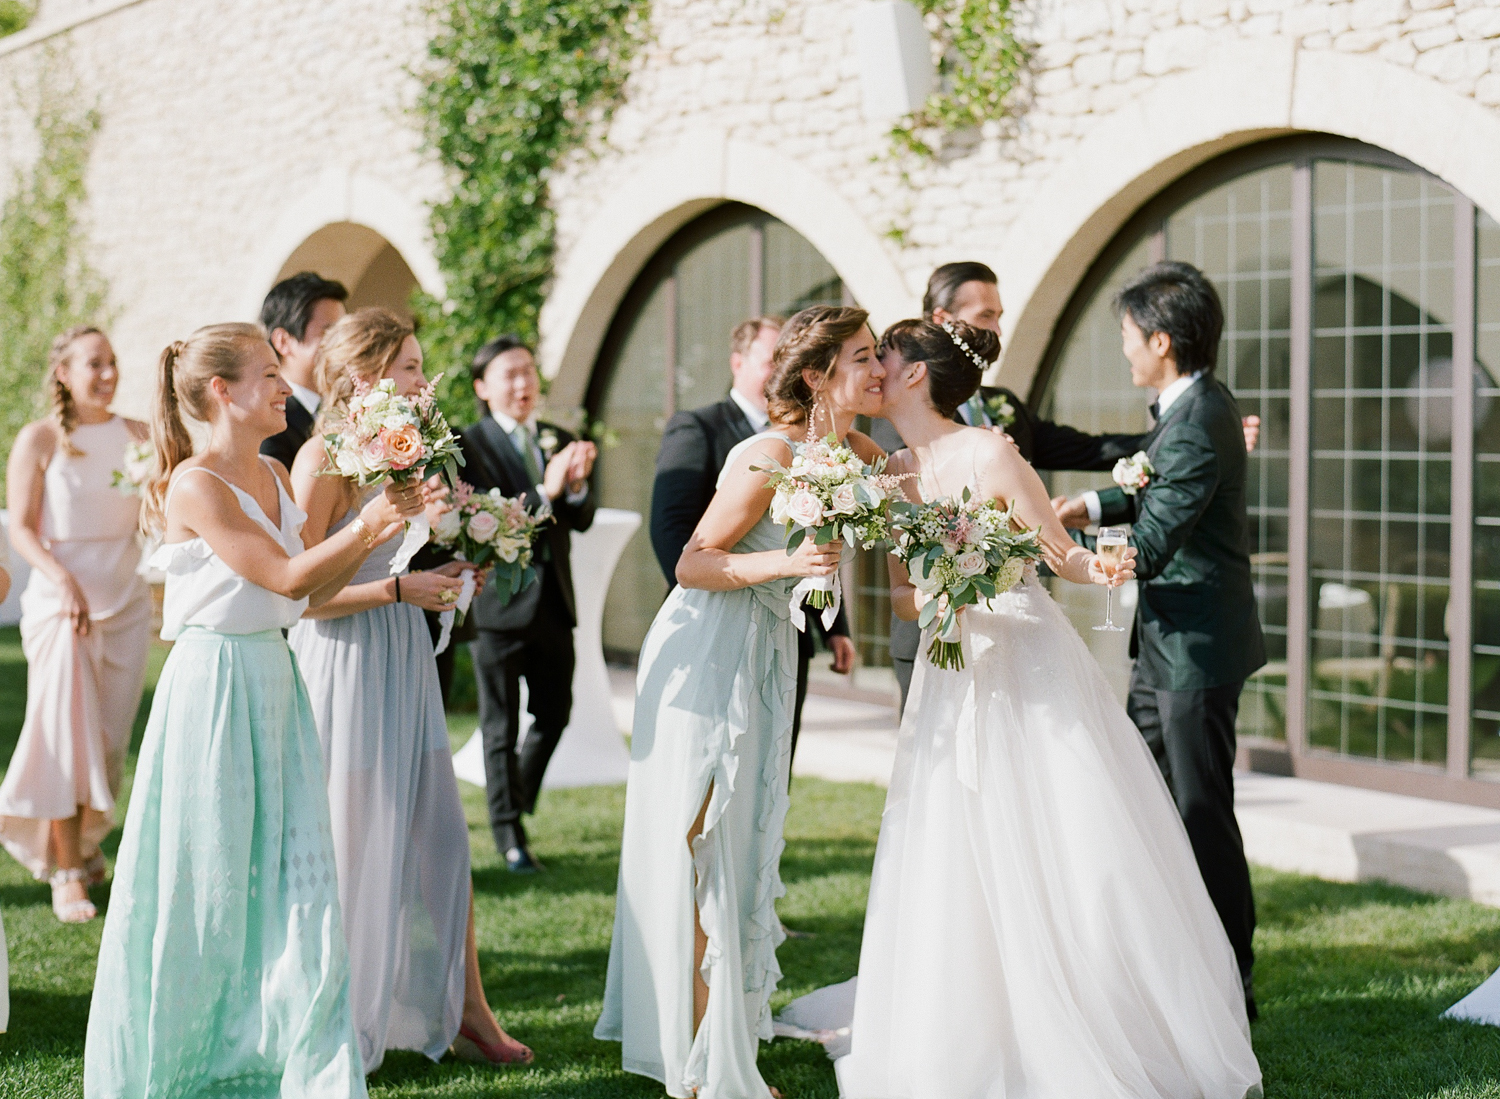 The bridal party greets the bride and groom after the ceremony; Sylvie Gil Photography